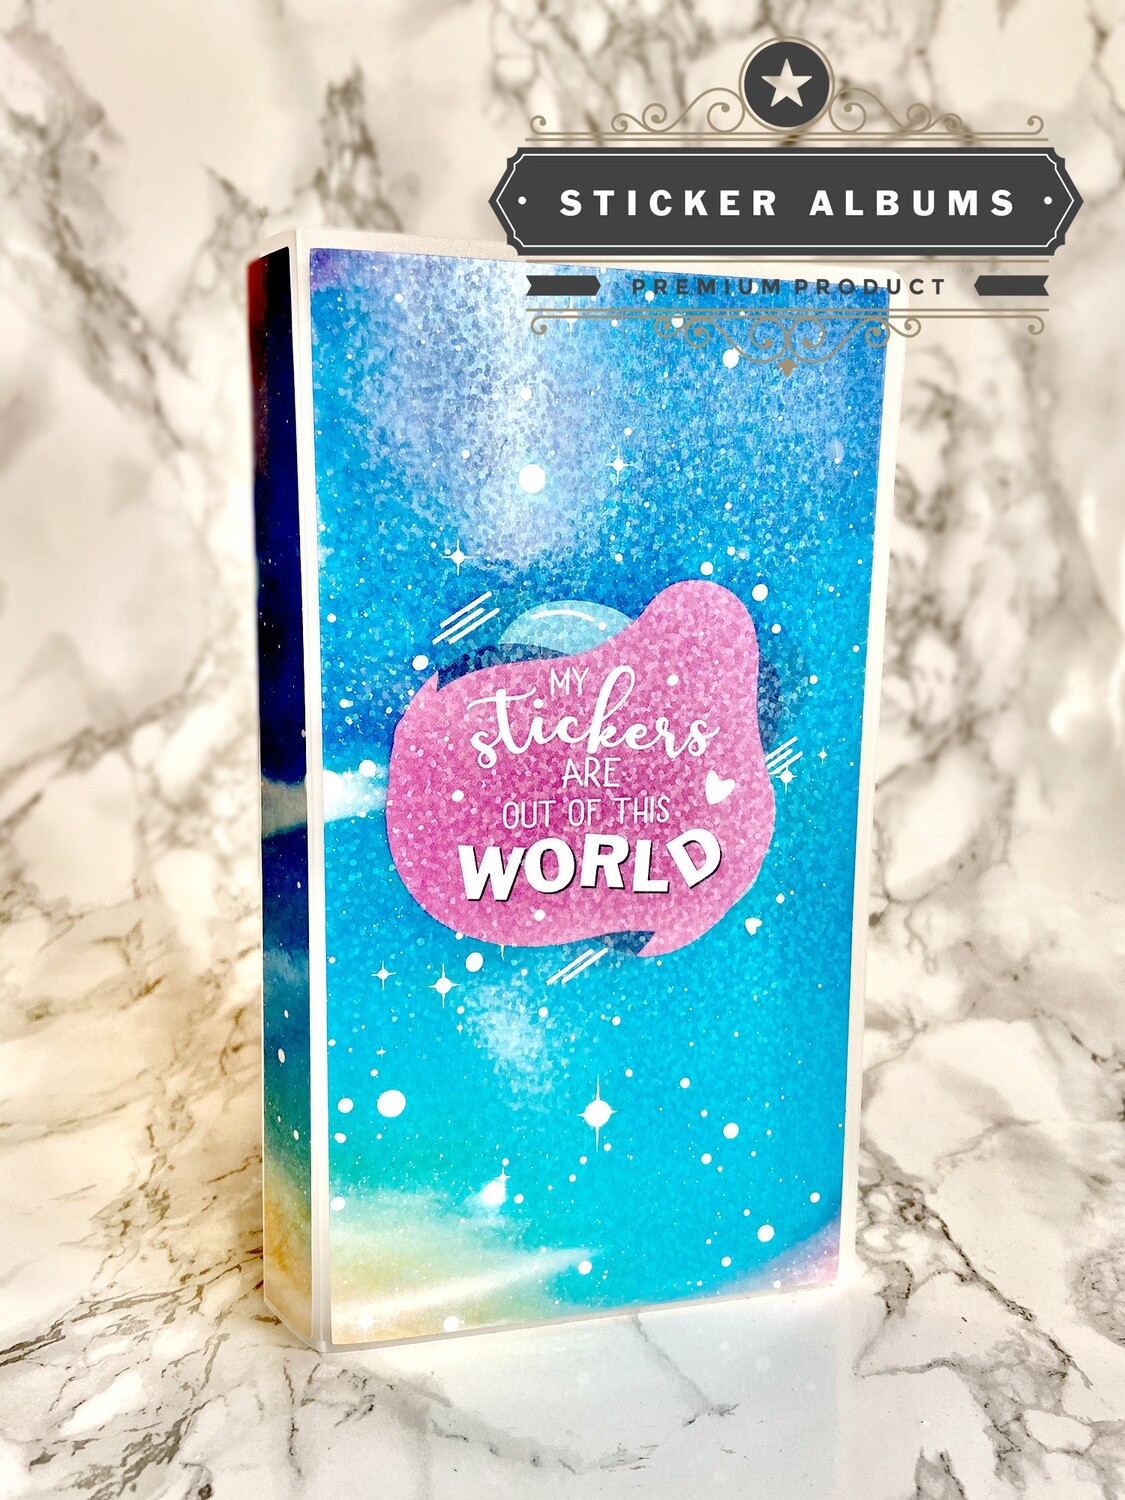 Limited Edition My Stickers are Out of this World Sticker Album | Holographic Sticker Storage Hobonichi Weeks